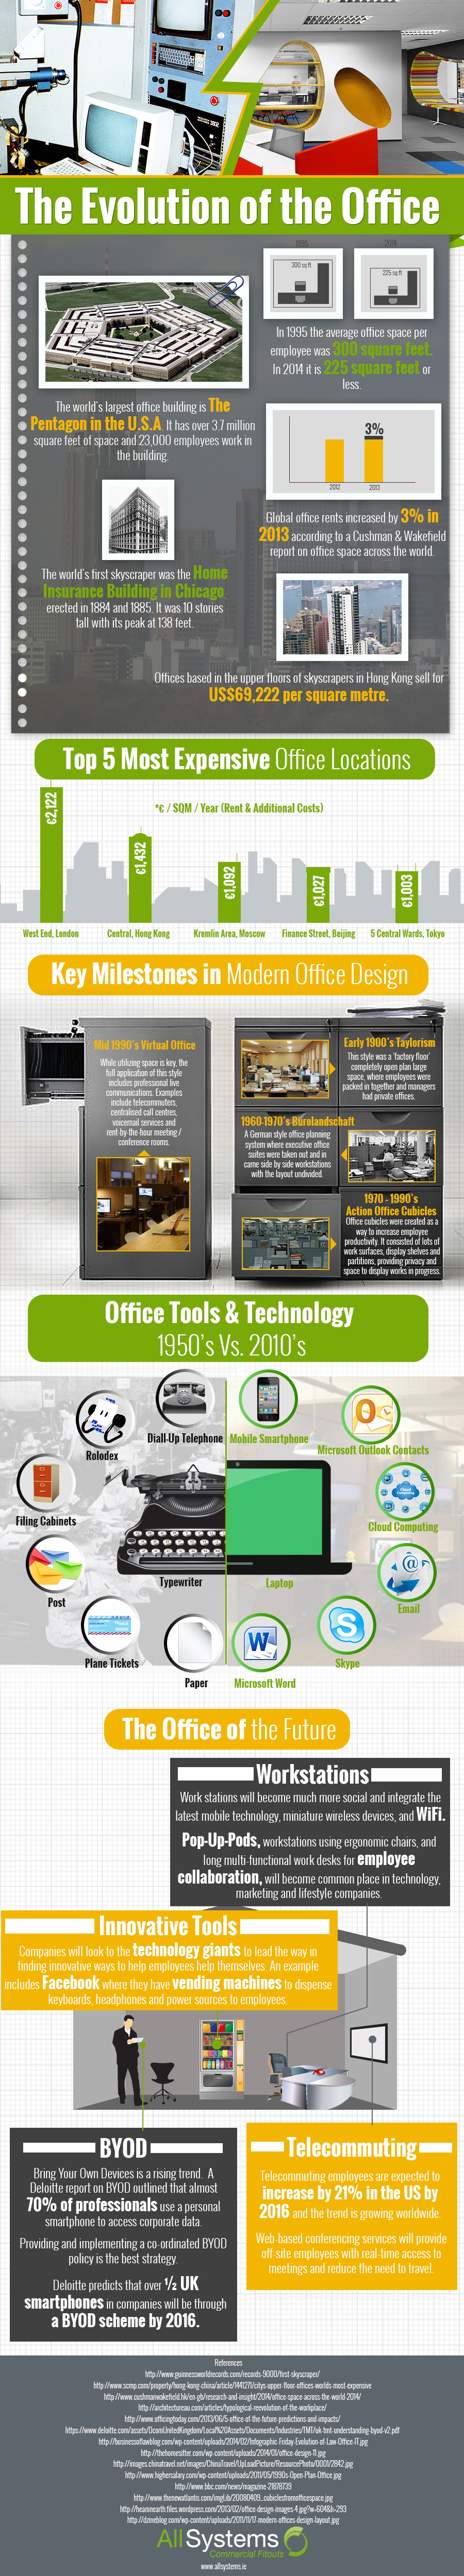 The Evolution of the Office, An infographic – How Modern Offices Have Evolved And What to Expect in the Future   Visual.ly